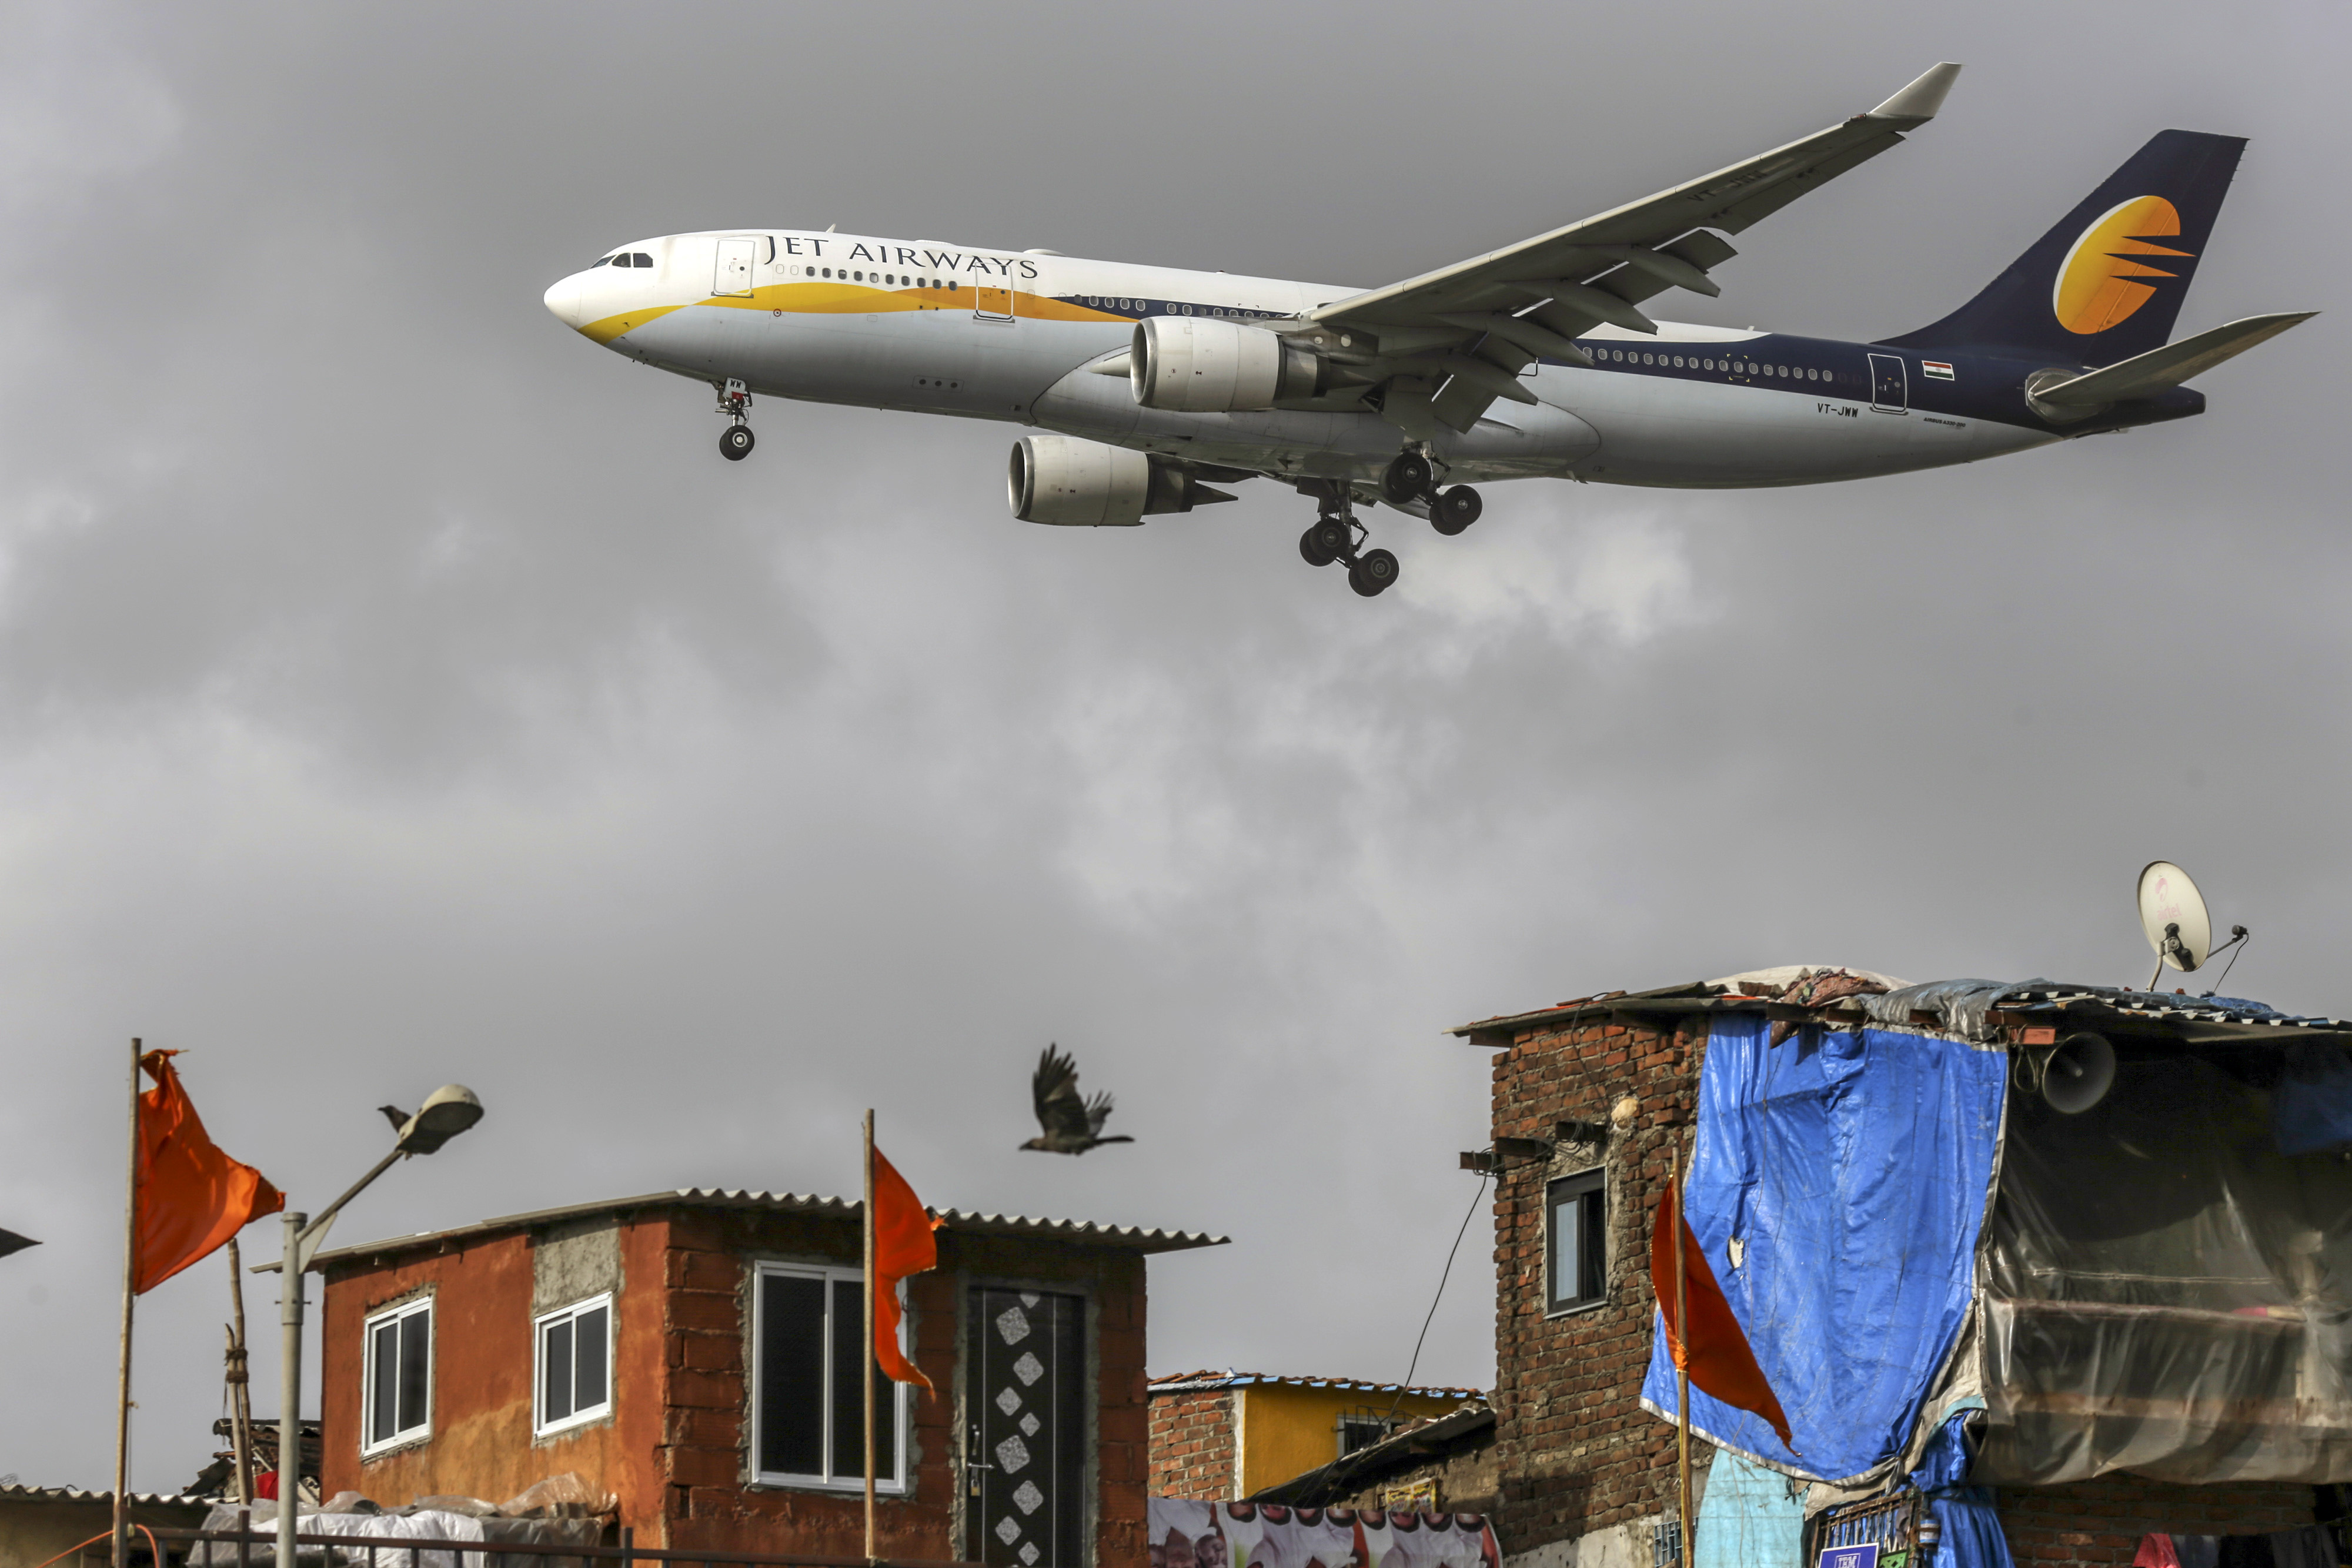 Views of Indian Airlines